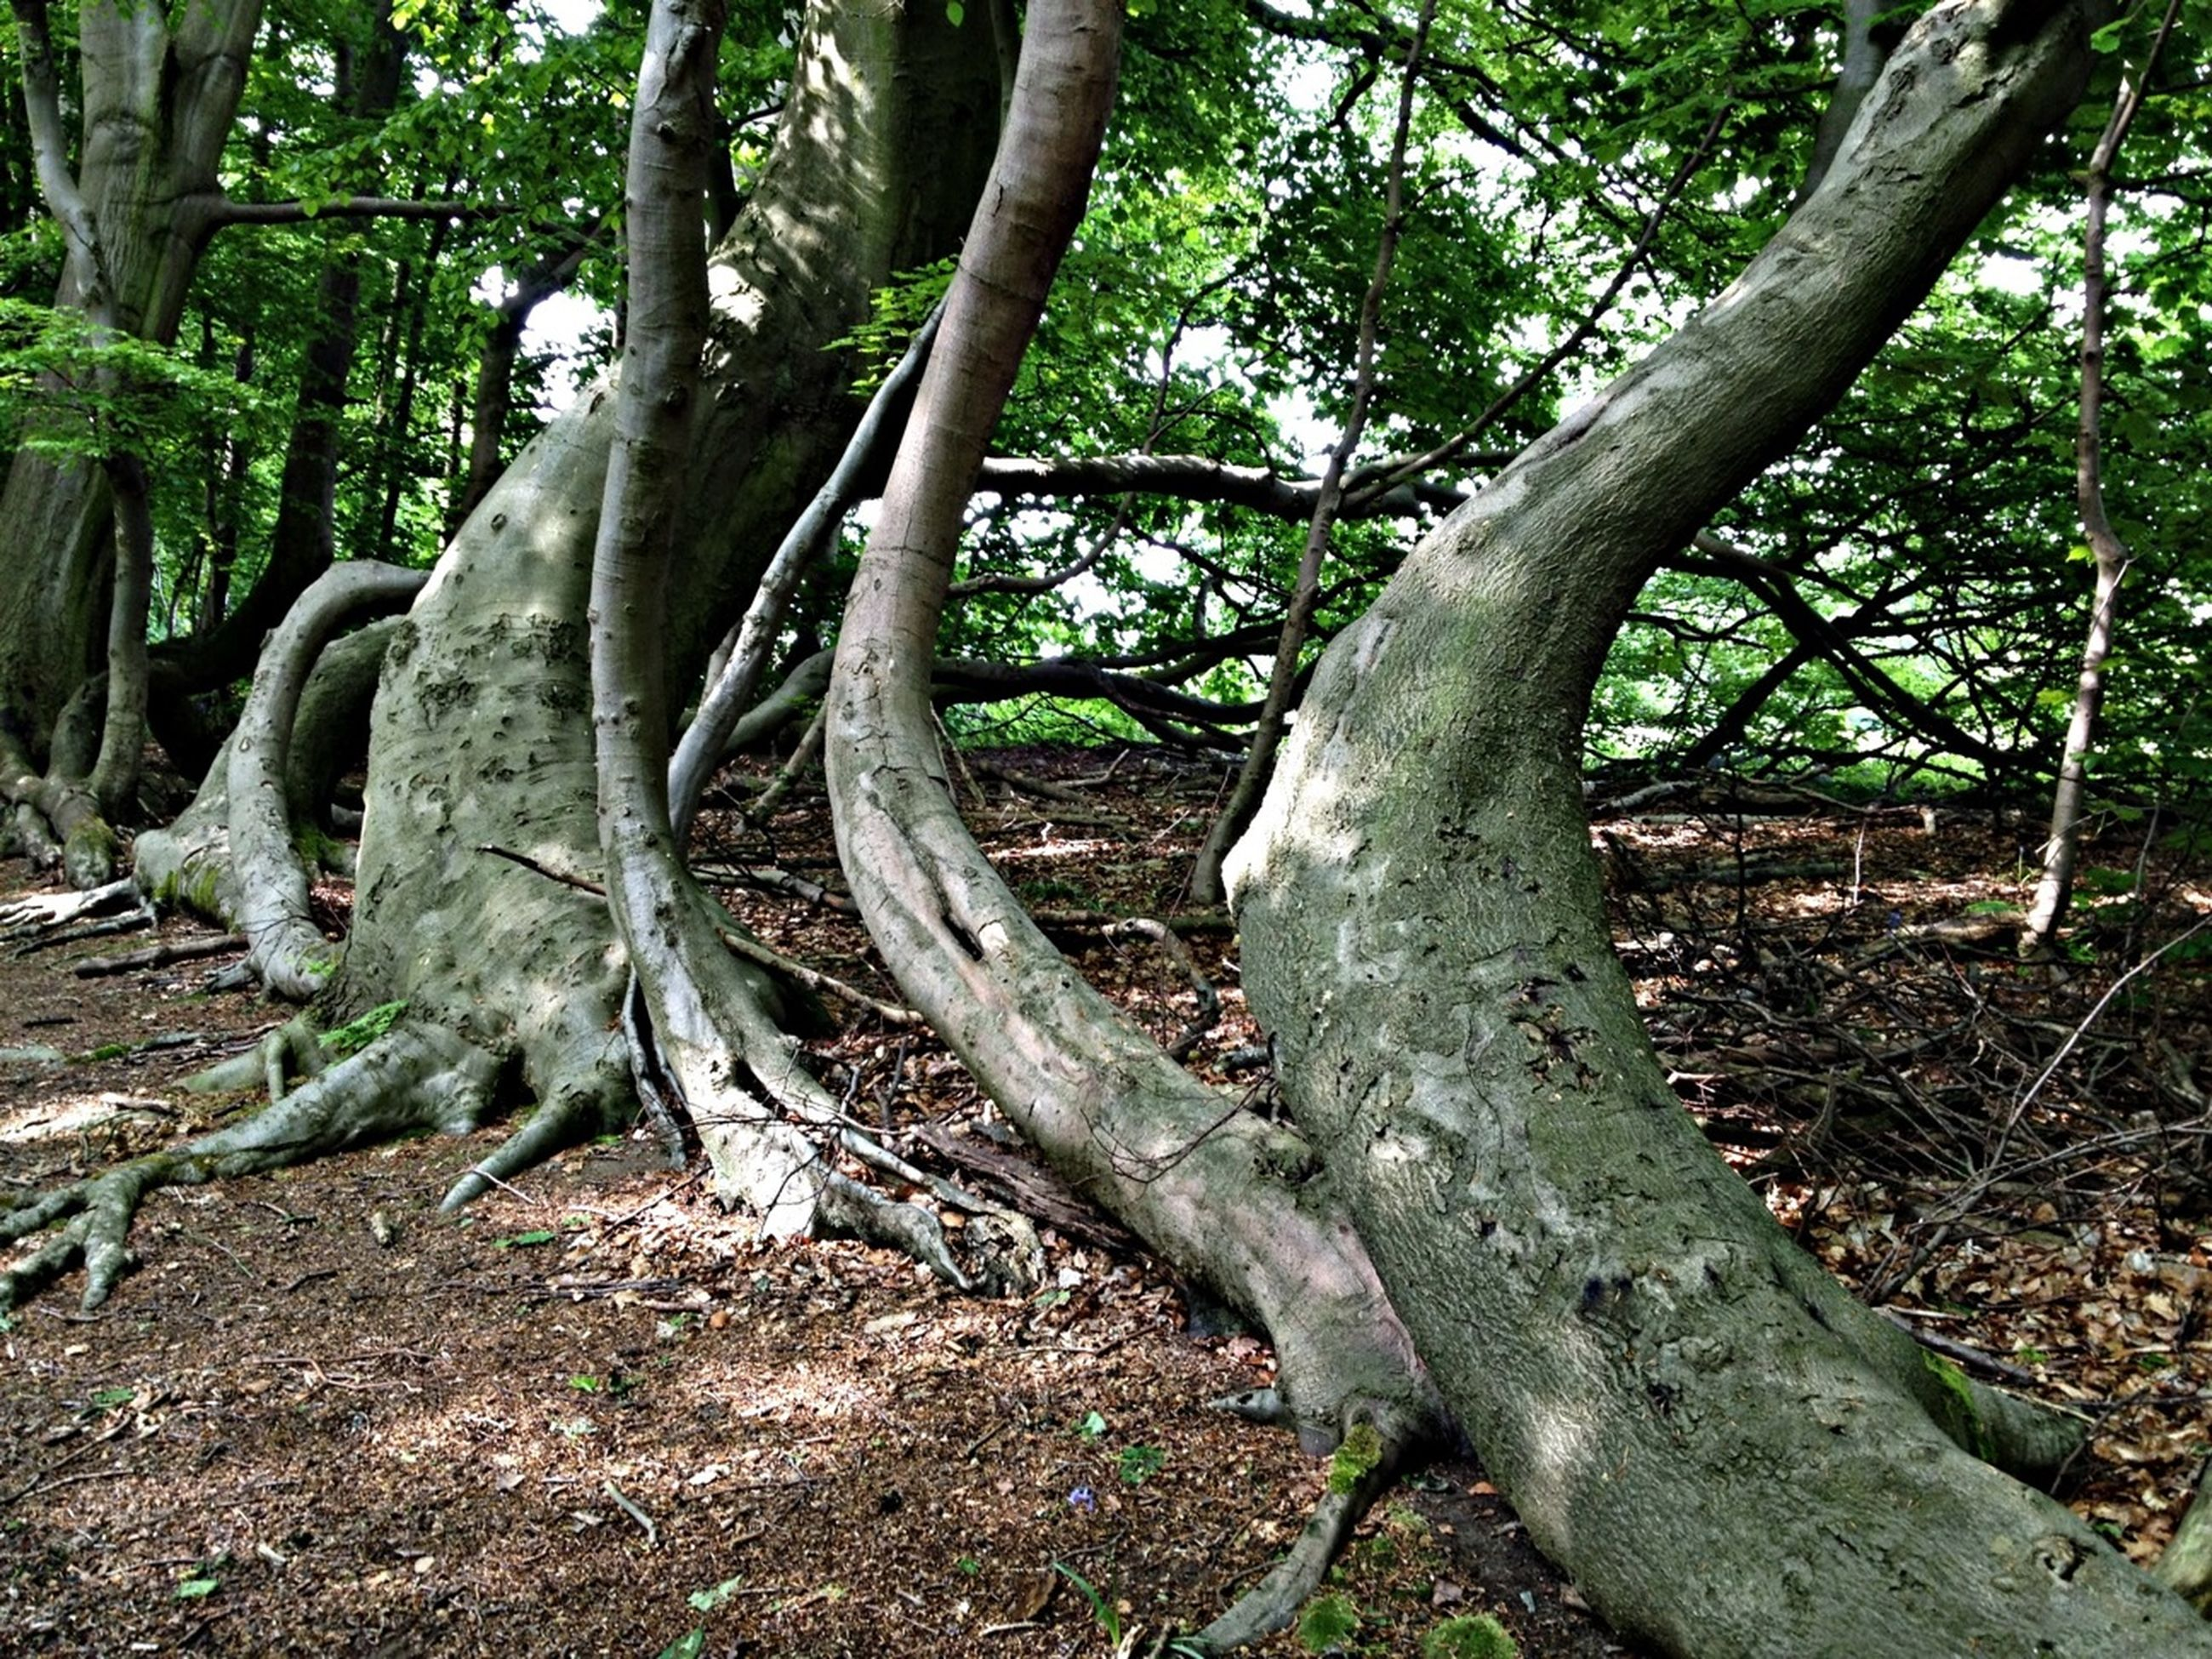 tree, tree trunk, forest, growth, tranquility, branch, nature, woodland, tranquil scene, root, beauty in nature, scenics, landscape, day, non-urban scene, outdoors, no people, plant, non urban scene, fallen tree